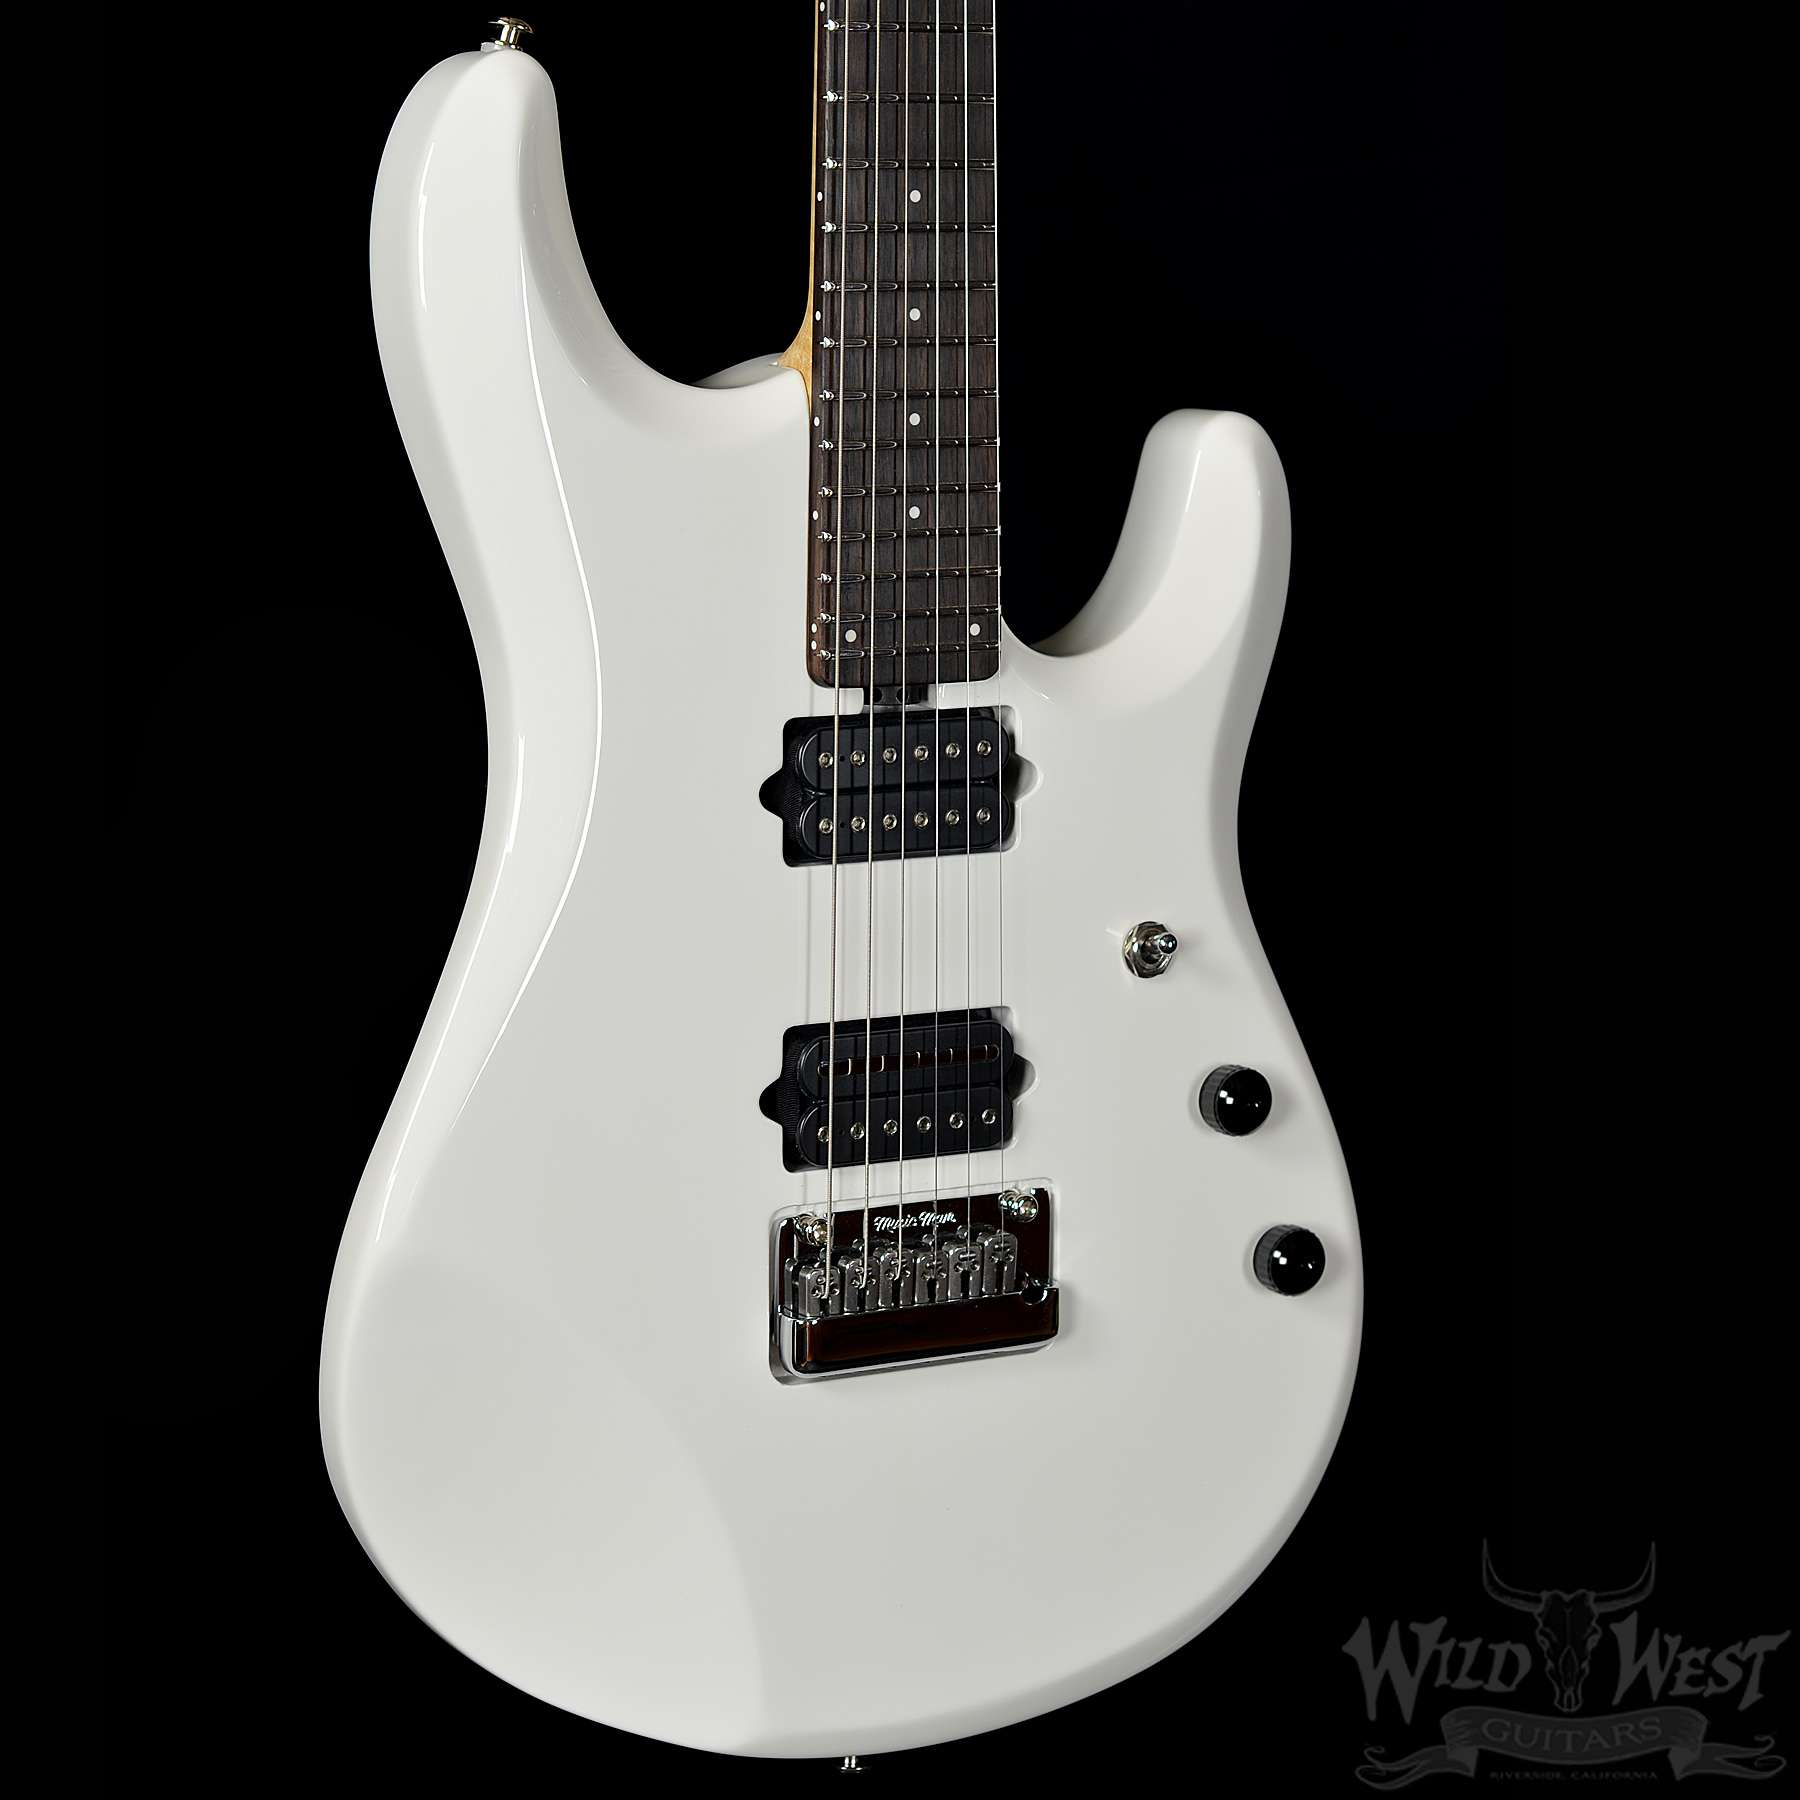 Ernie Ball Music Man Petrucci JP6 White Pearl - Wild West Guitars